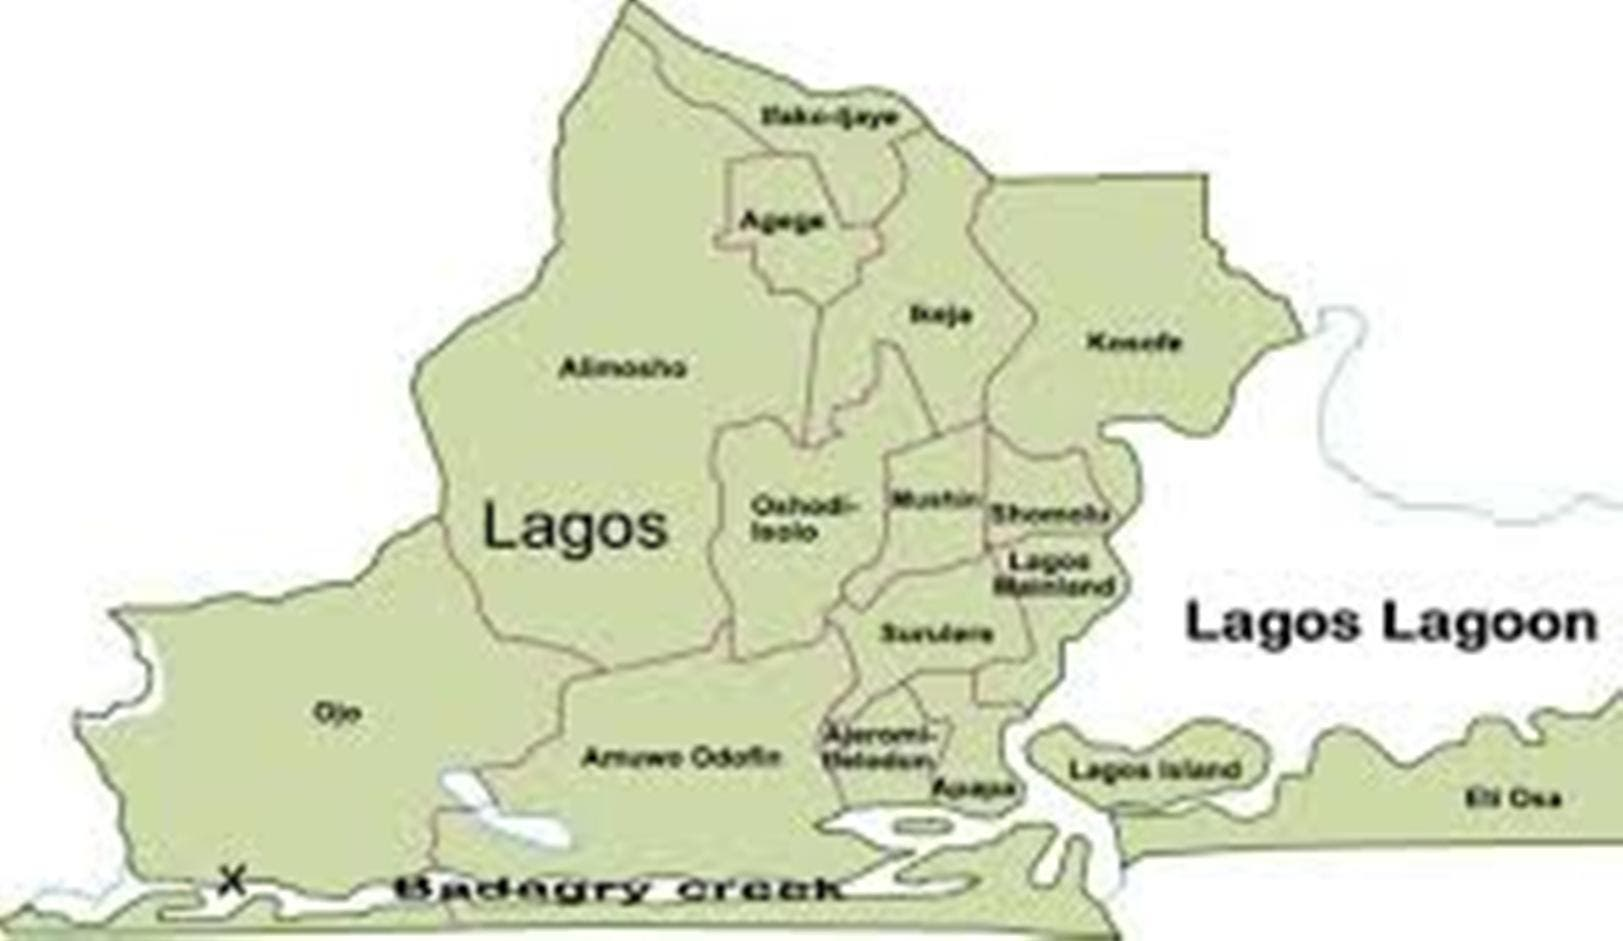 Nigeria news : Lagos bye-election: Live updates, results, situation reports on senatorial poll